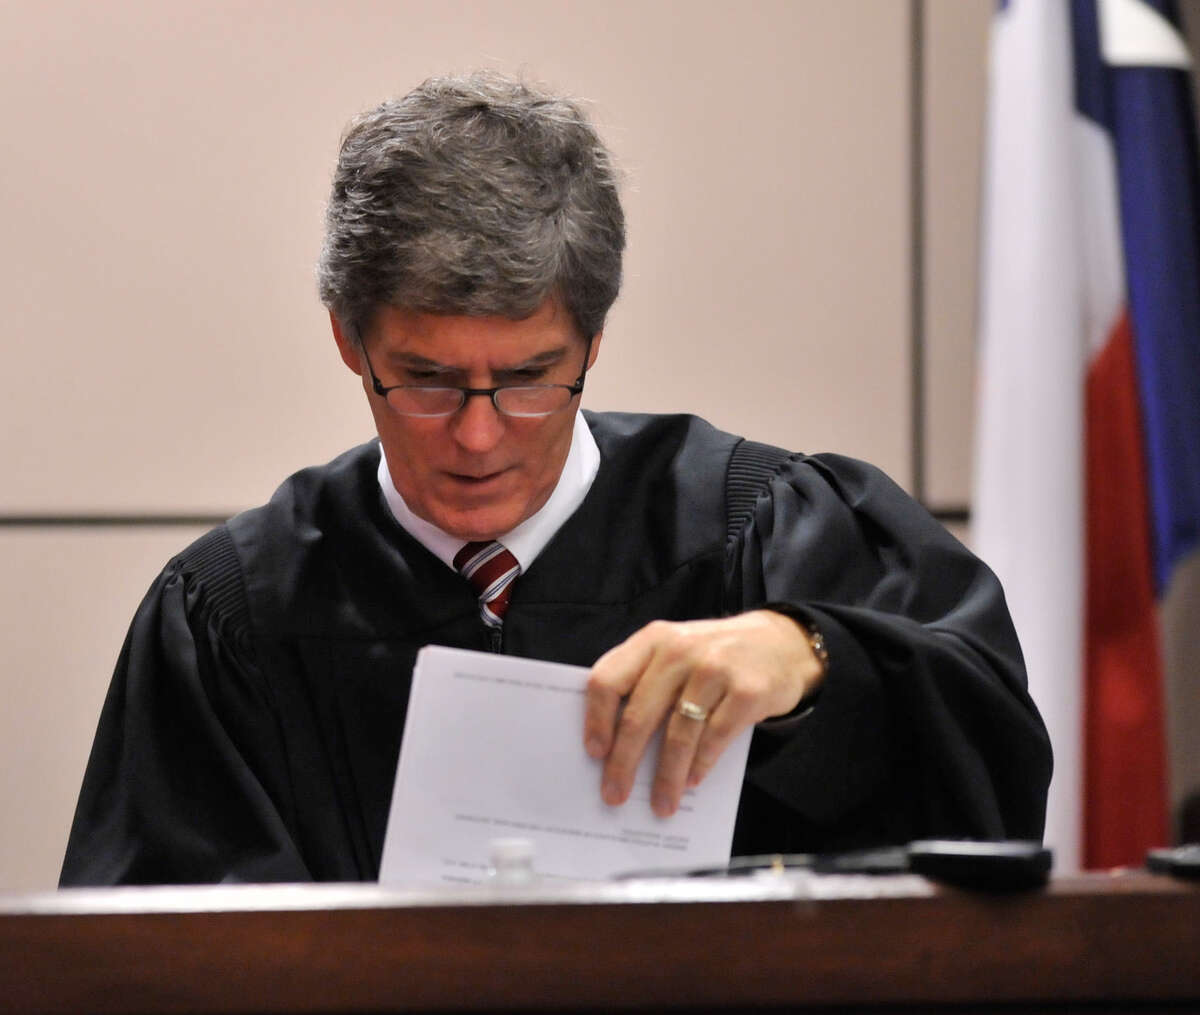 Visiting Judge Bert Richardson has set Oct. 31 as Gov. Perry's court appearance. The judge had prev-iously excus-ed Perry from court on Monday. The governor is traveling abroad this week.